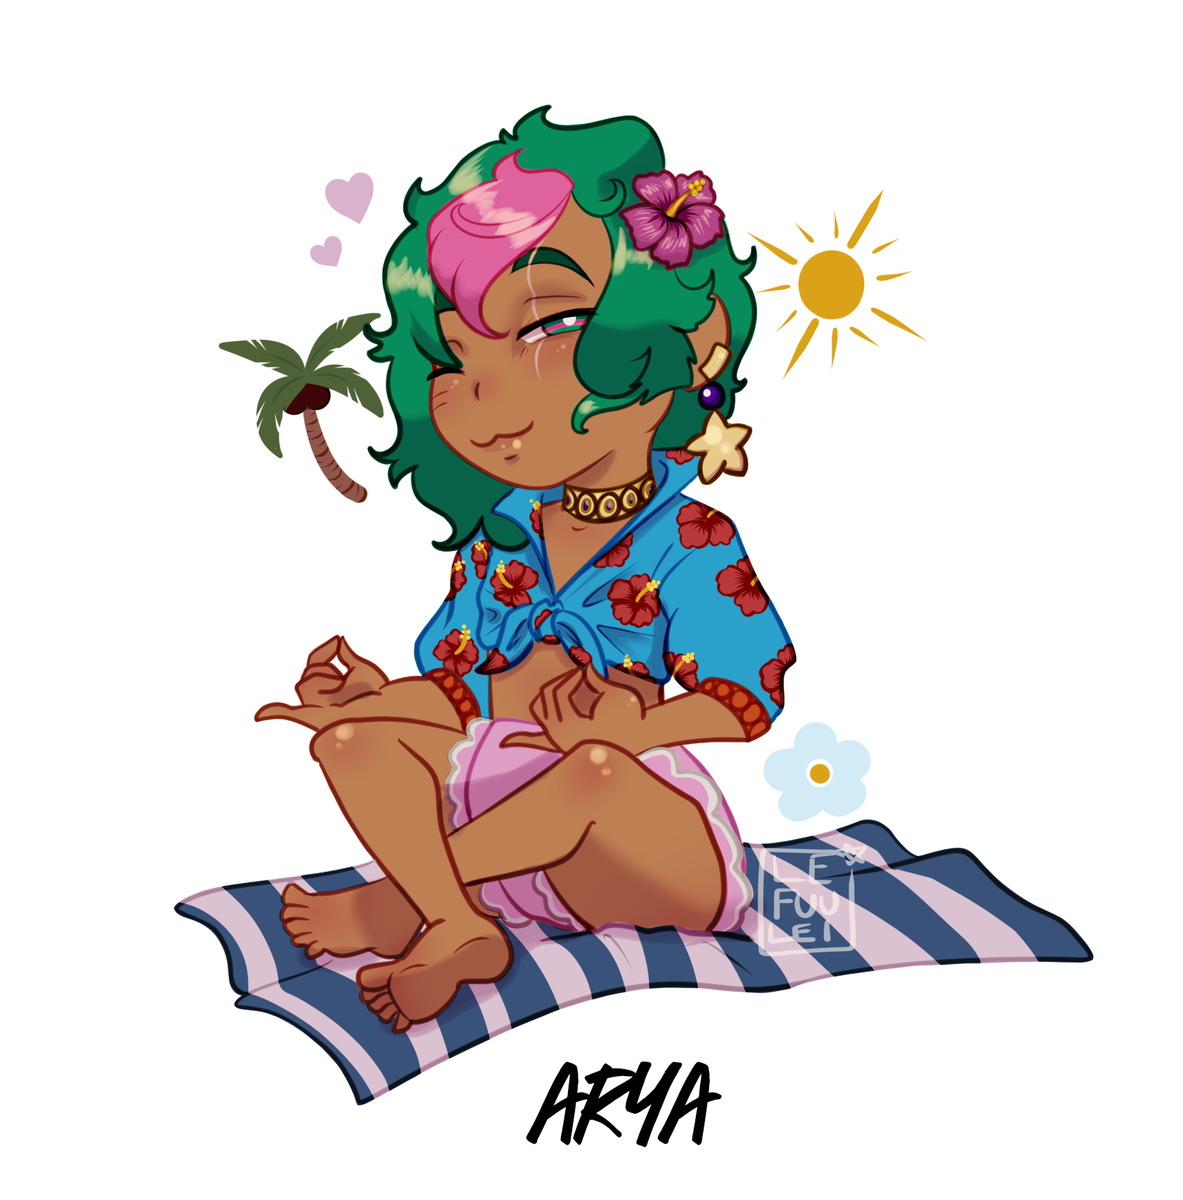 Art time! Have a lil #AryaAlsaahir soaking up the sun! #LefuuleiArt #TheArcanaGame #SummerTales #Fanart #FanApprentice #TheArcanaApprentice #OriginalCharacter #Chibi #DigitalArt #ArtistsonTwitter #TheArcanaApprenticepic.twitter.com/XB6RzC9iMw